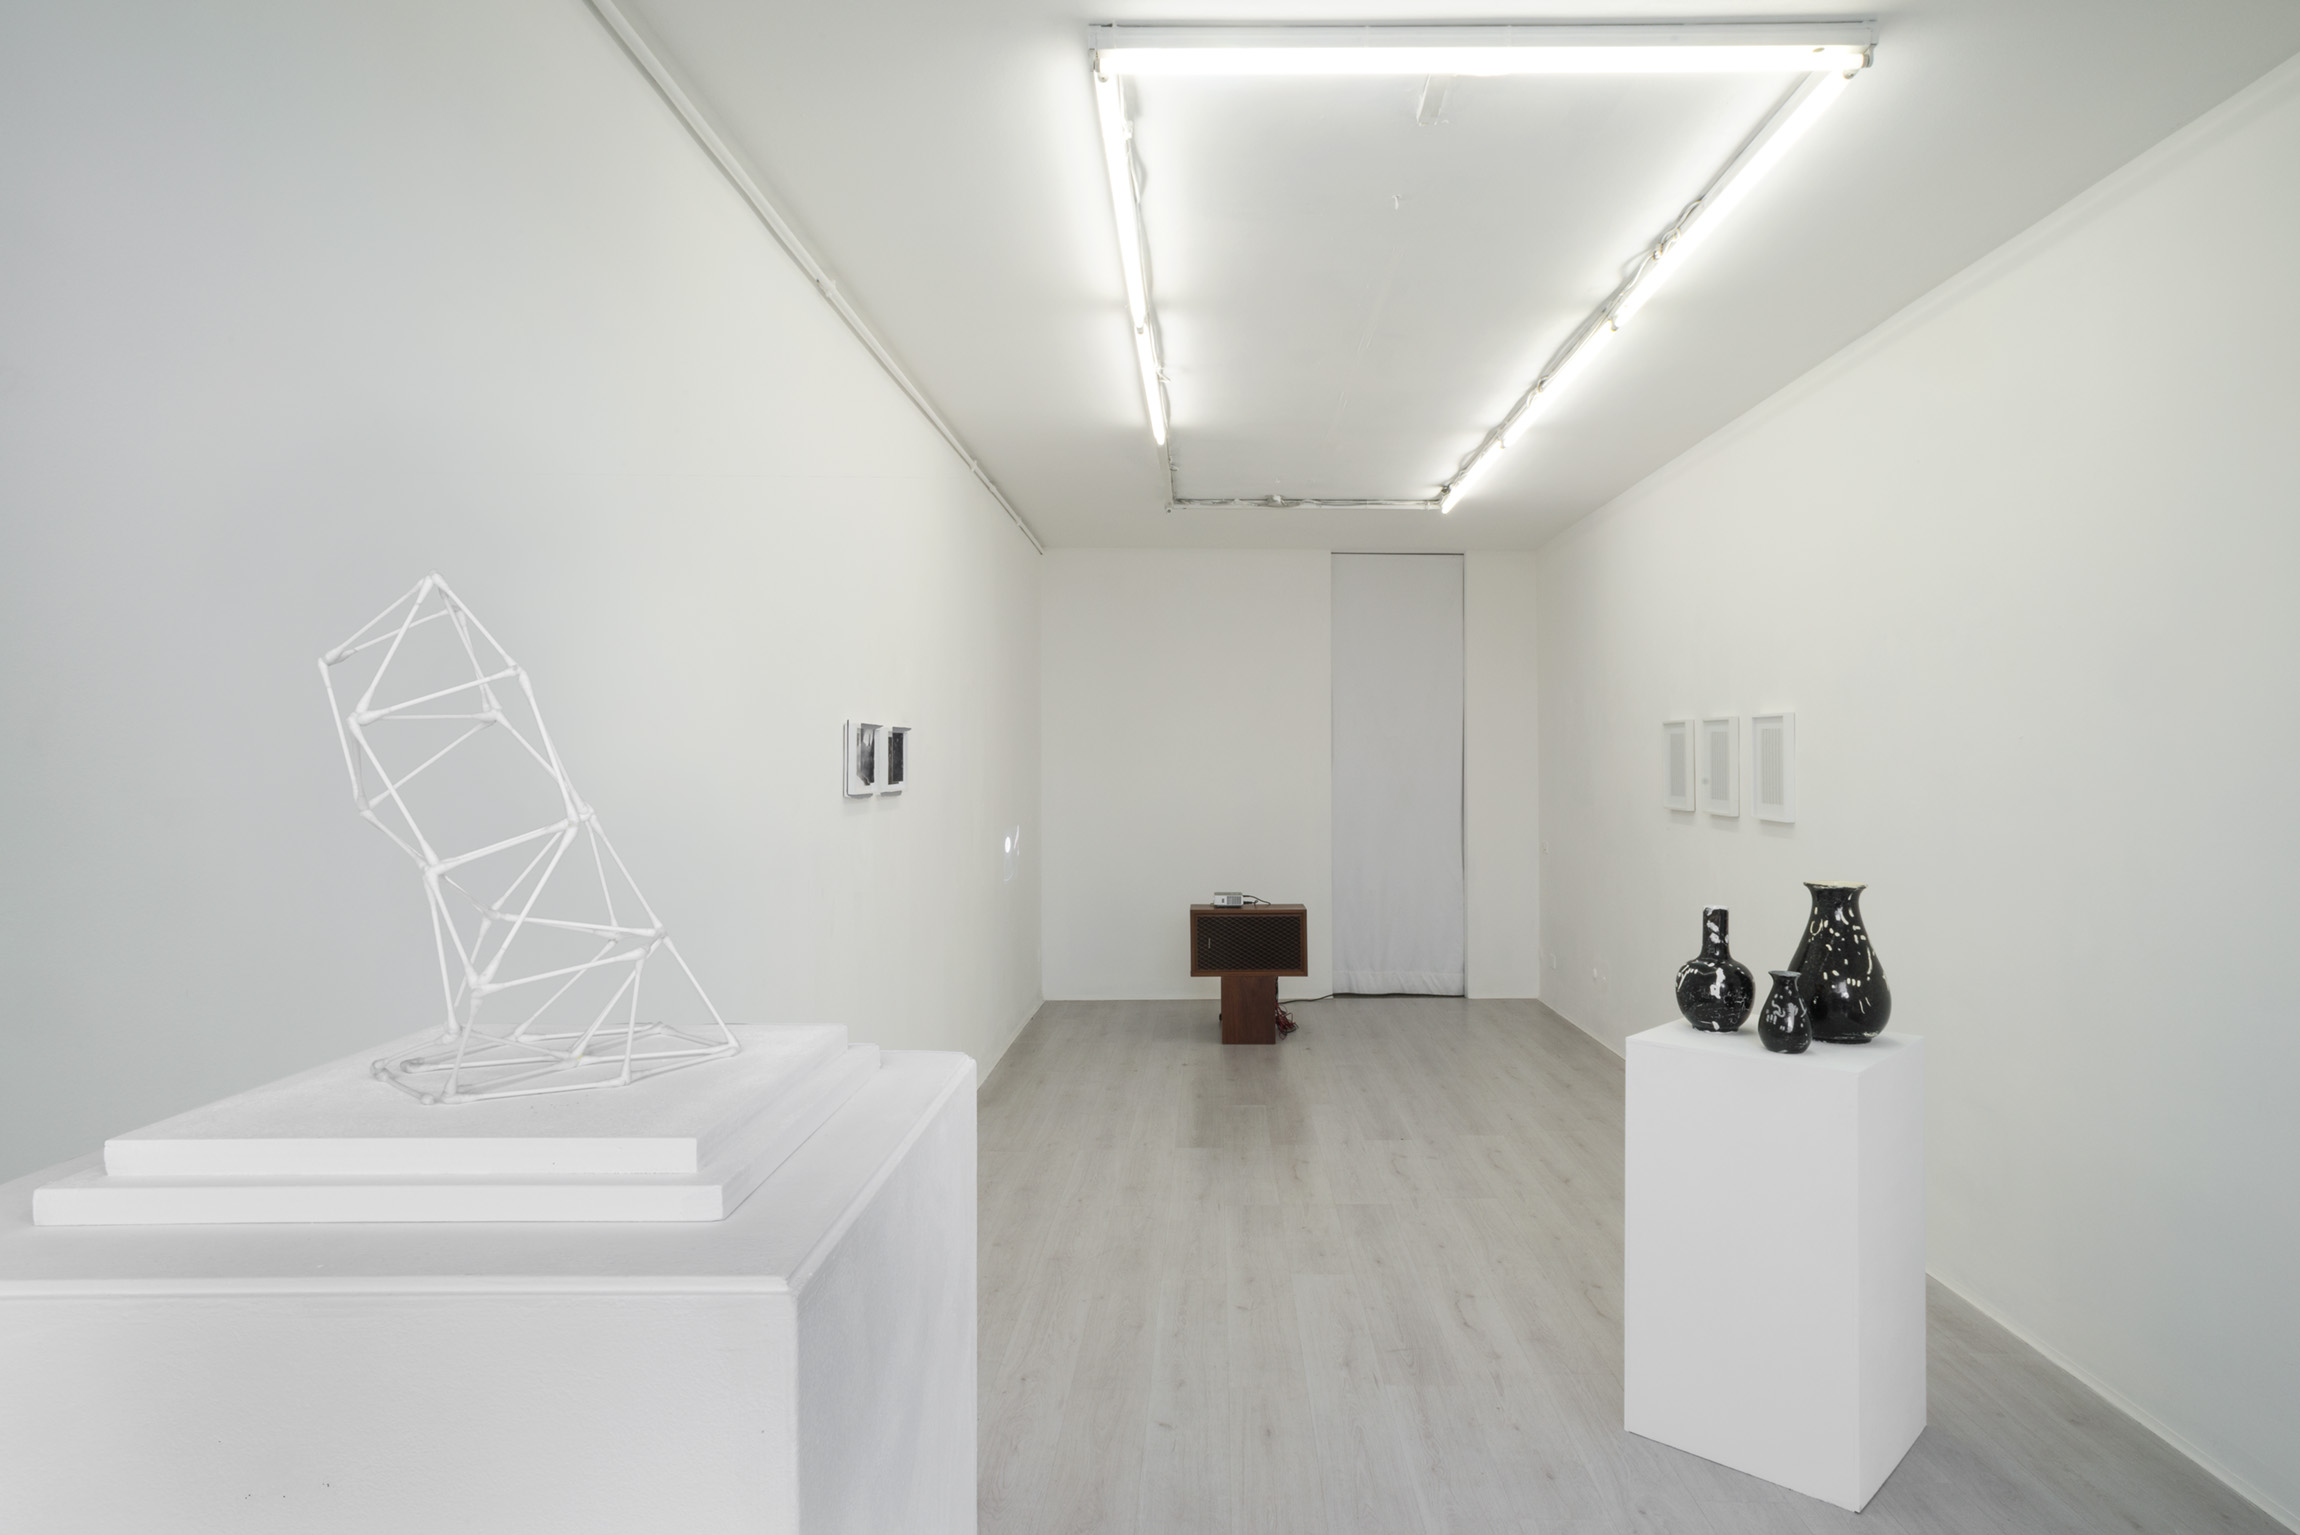 1. Gianluca Codeghini -Solo Noise- exhibition view at A+B gallery Brescia